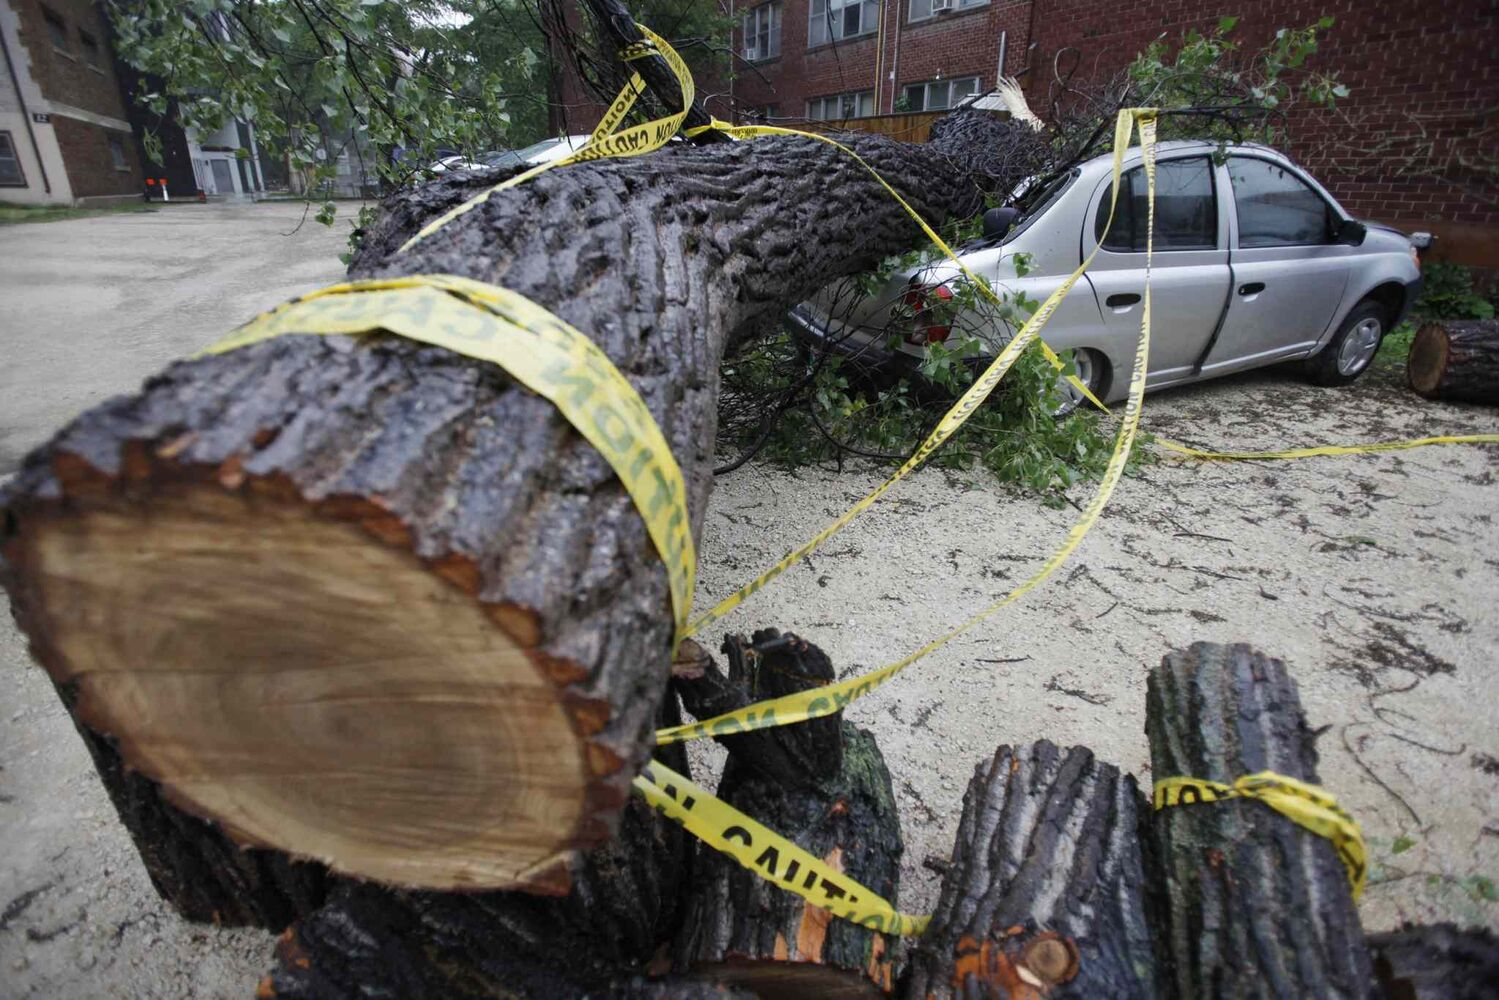 A tree blown over by strong winds damaged a parked car in Winnipeg, Sunday morning, June 29, 2014.  (John Woods / The Canadian Press)